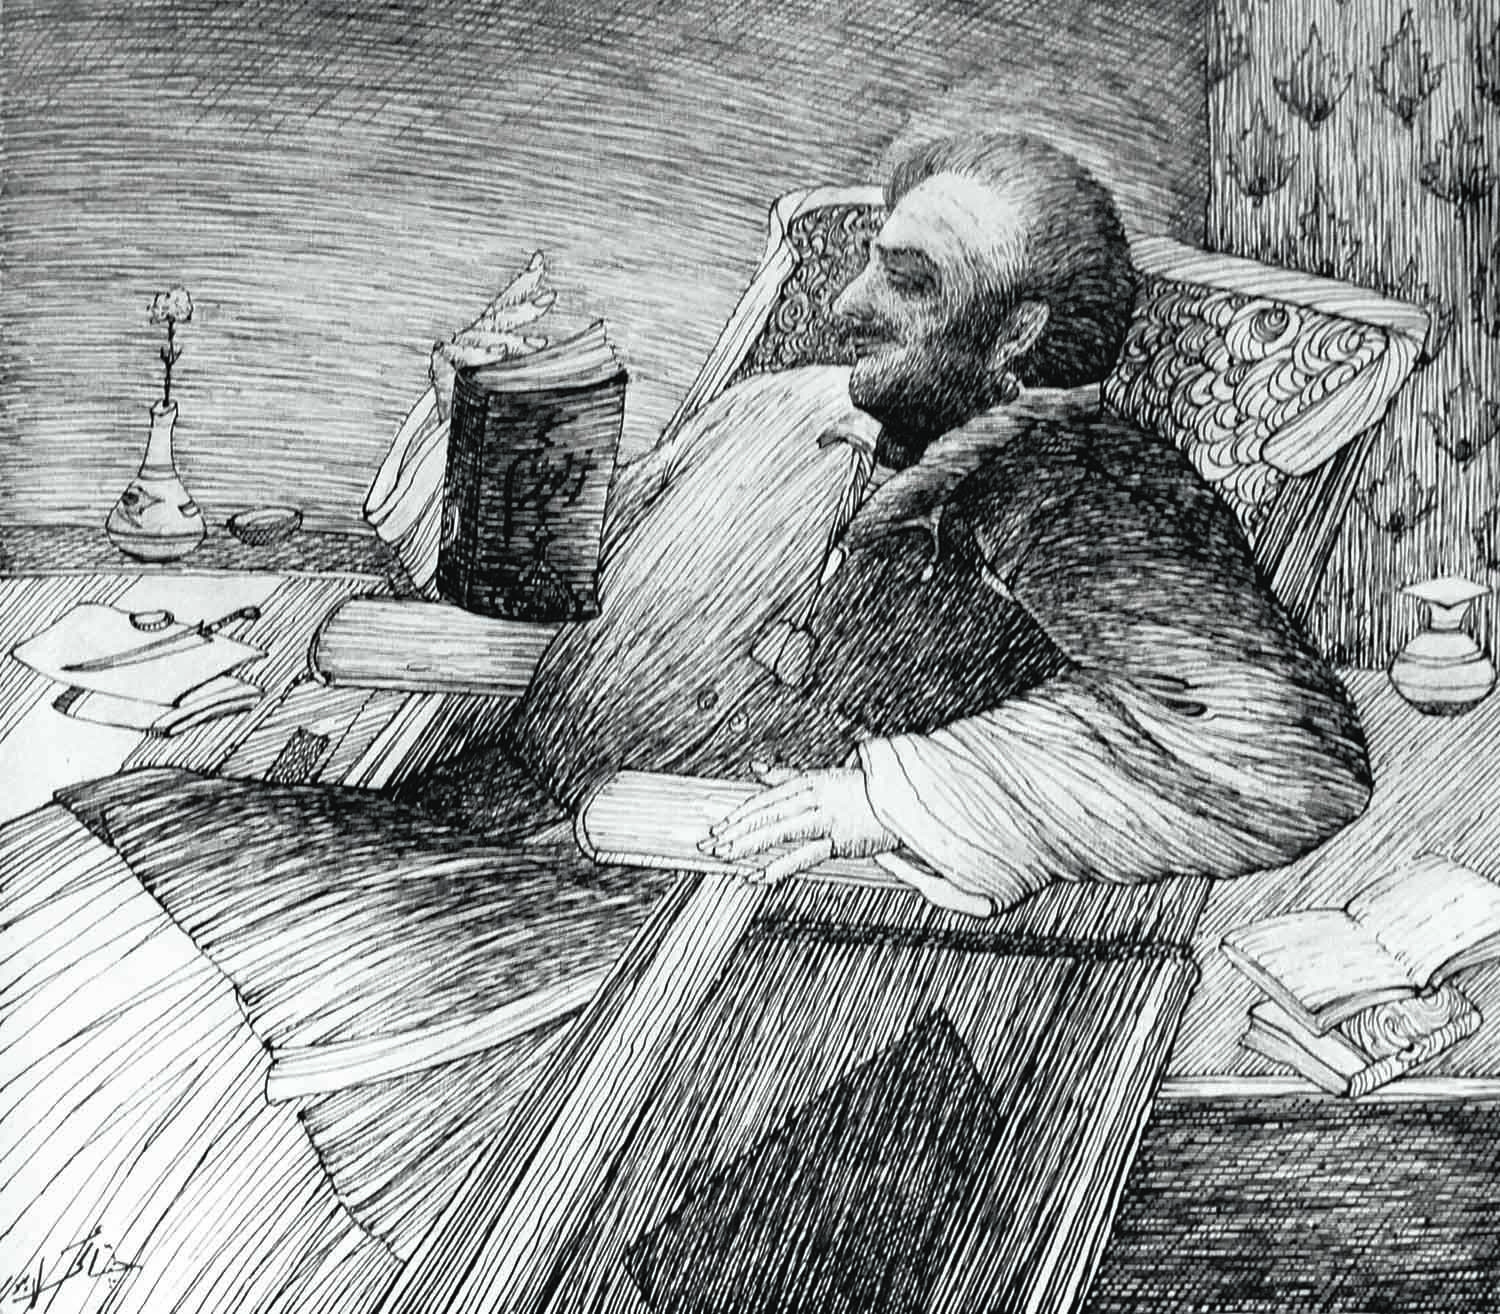 Inspired by a quatrain from Dana-i-Raaz, Chughtai etched a powerful portrait of Iqbal (above) reading through Zabur-i-Ajam, a volume of his poems.